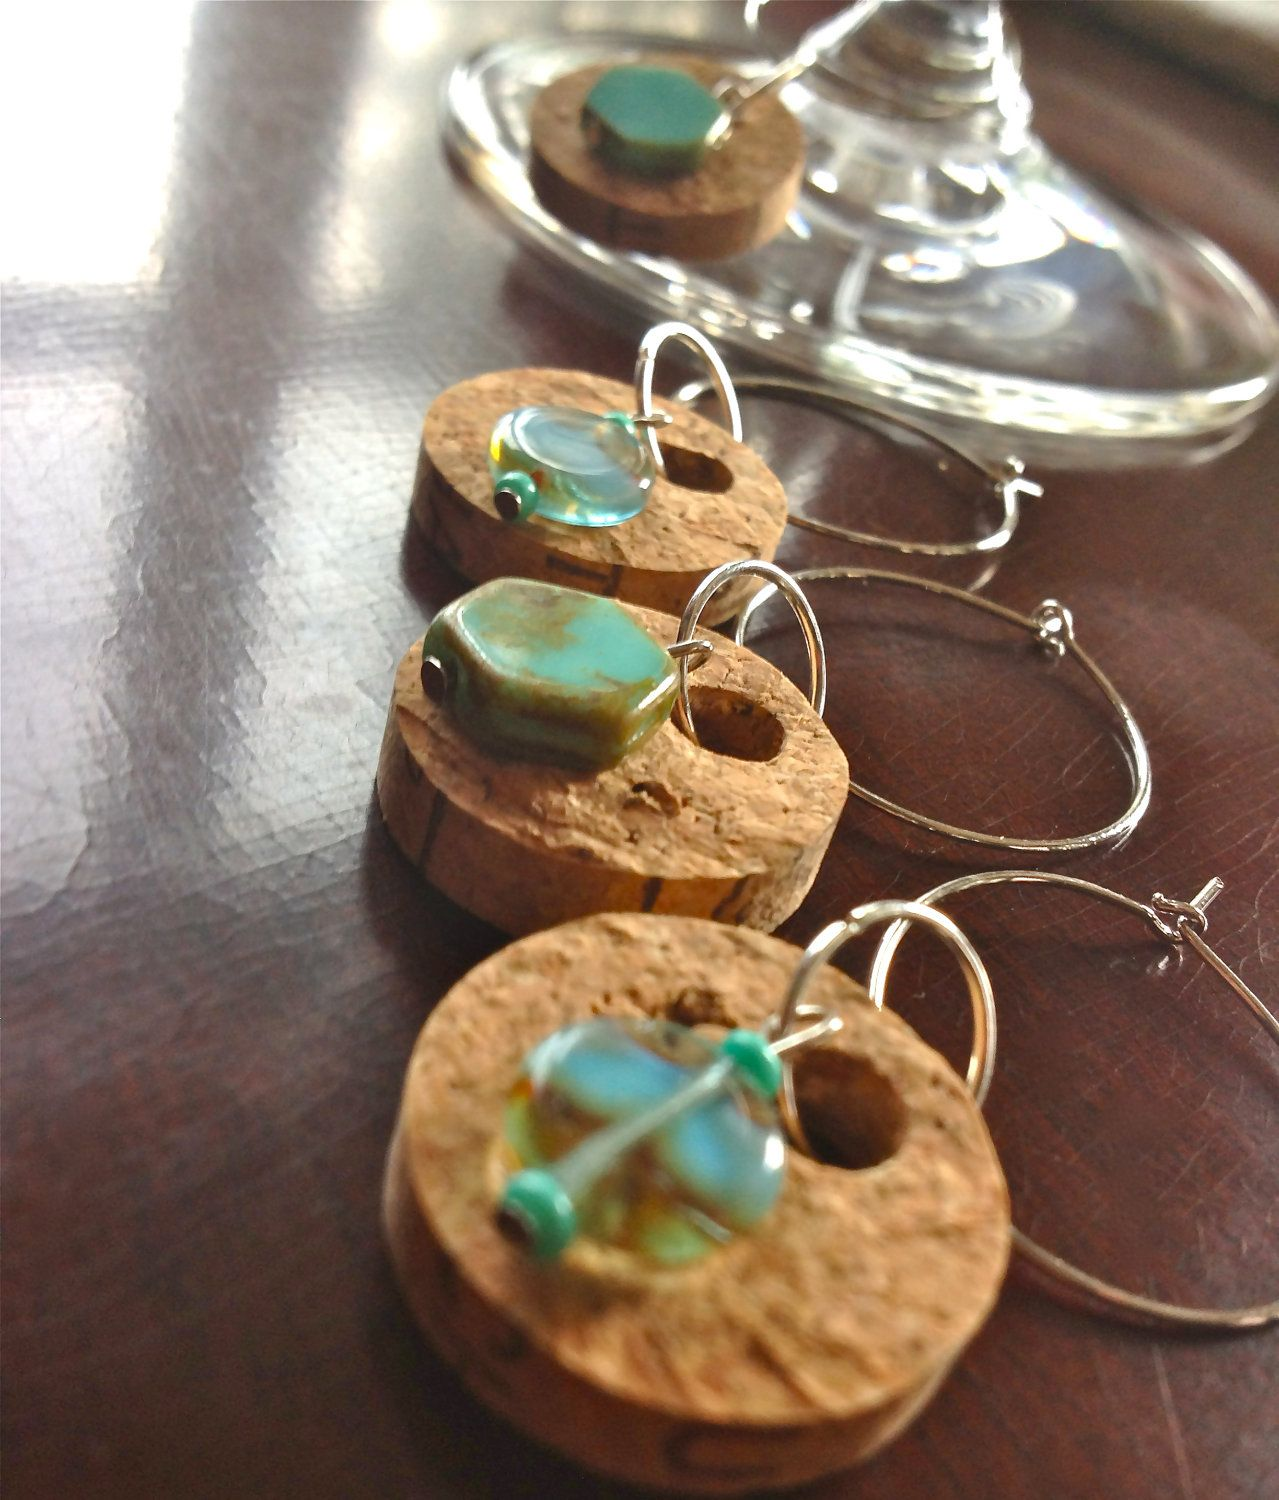 Cork Crafts For Weddings: Cork Wine Glass Charms Set Of 3 By Aileenrae On Etsy, $7